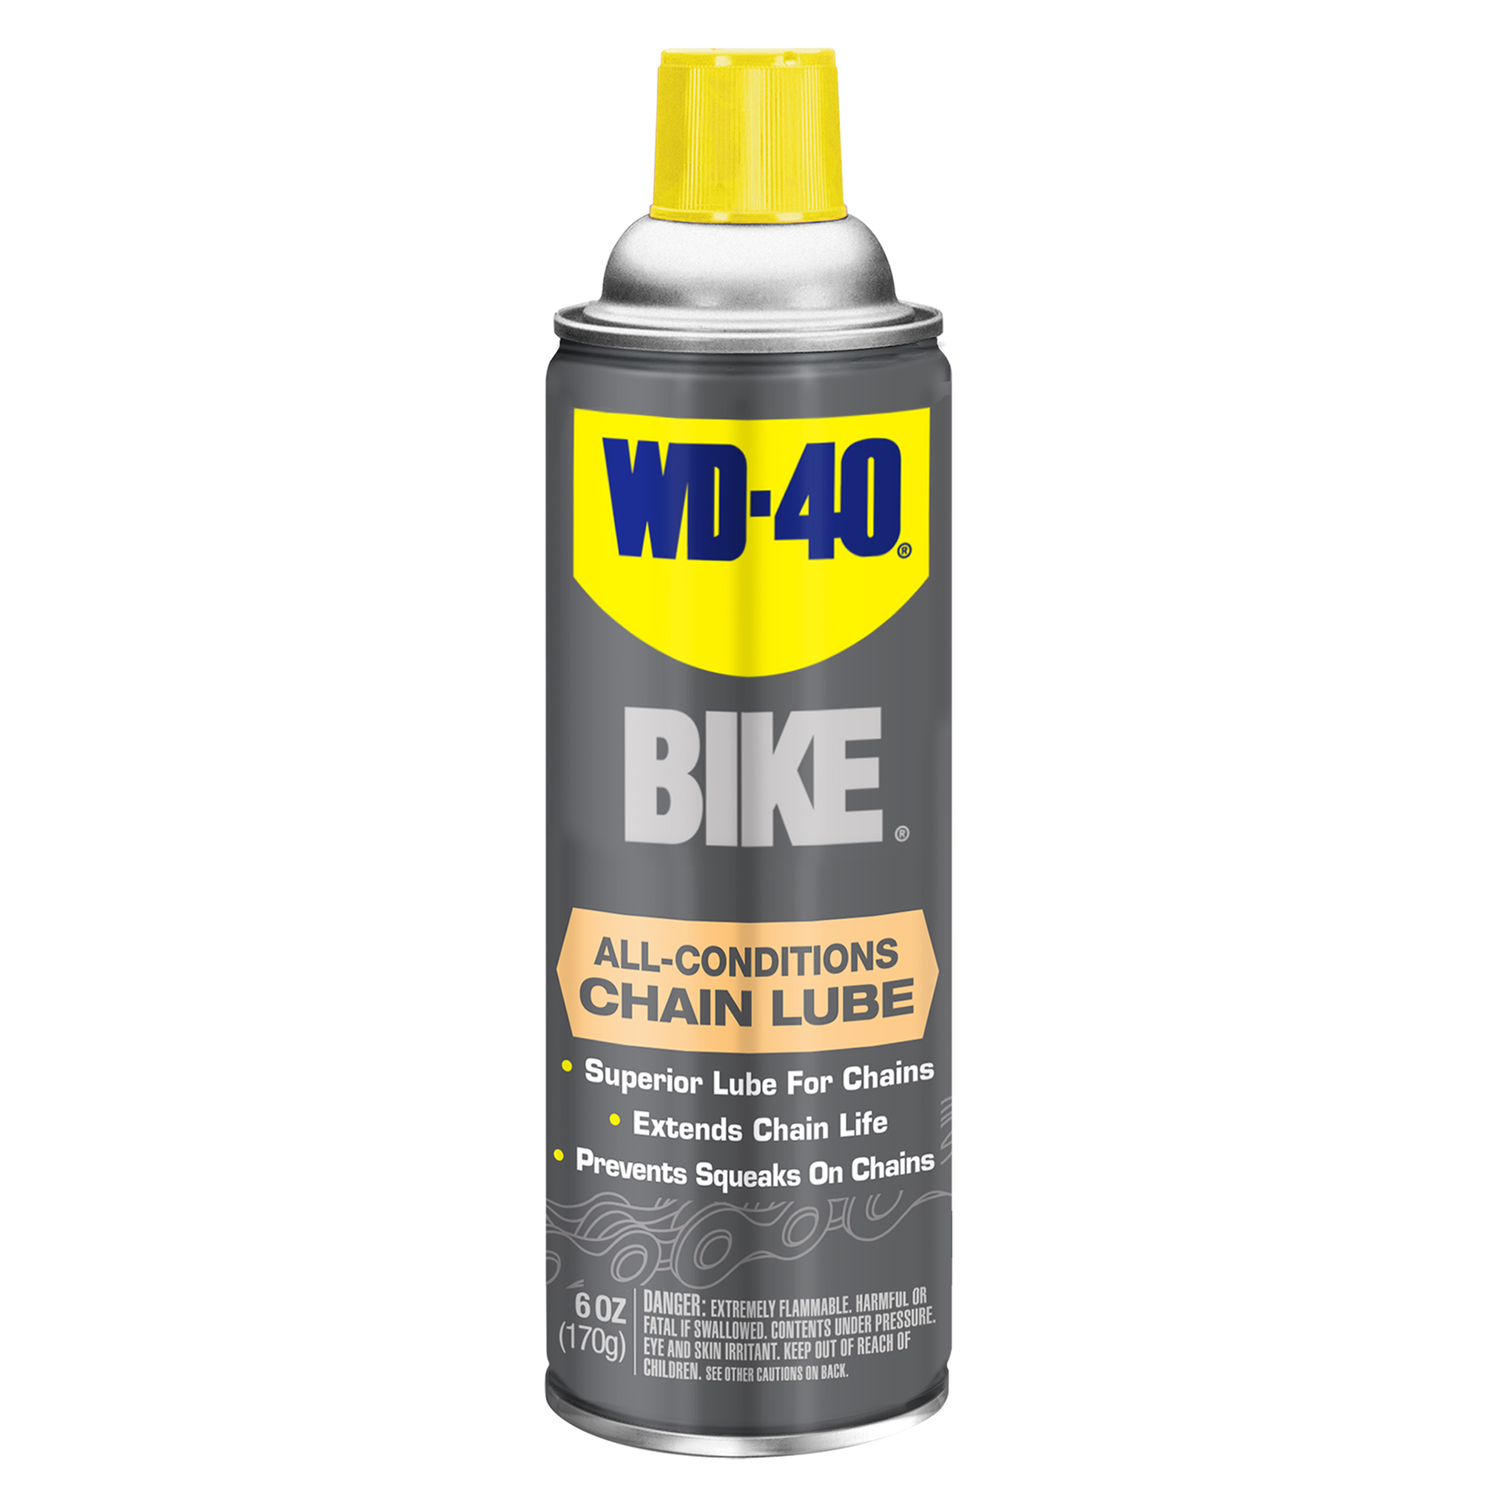 WD-40  Bike  Chain and Wire Pulling  Chain Lube  6 oz.